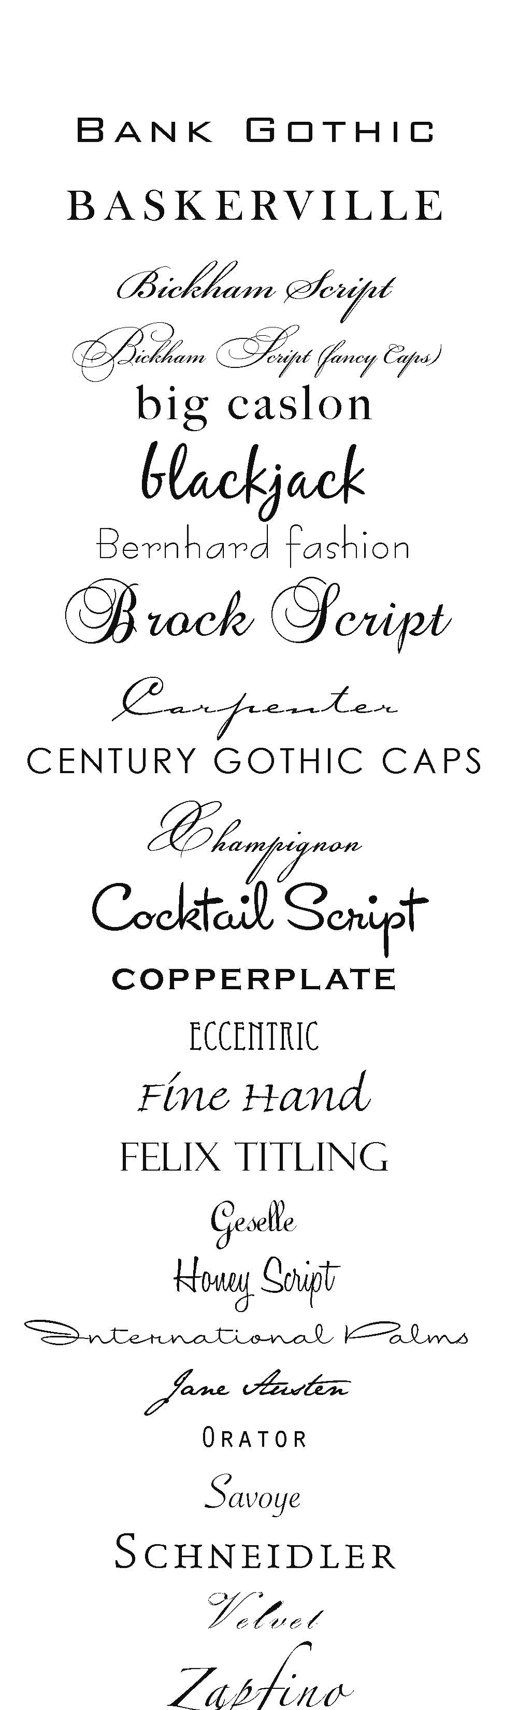 #fonts #wedding #polices d'ecriture #mariage